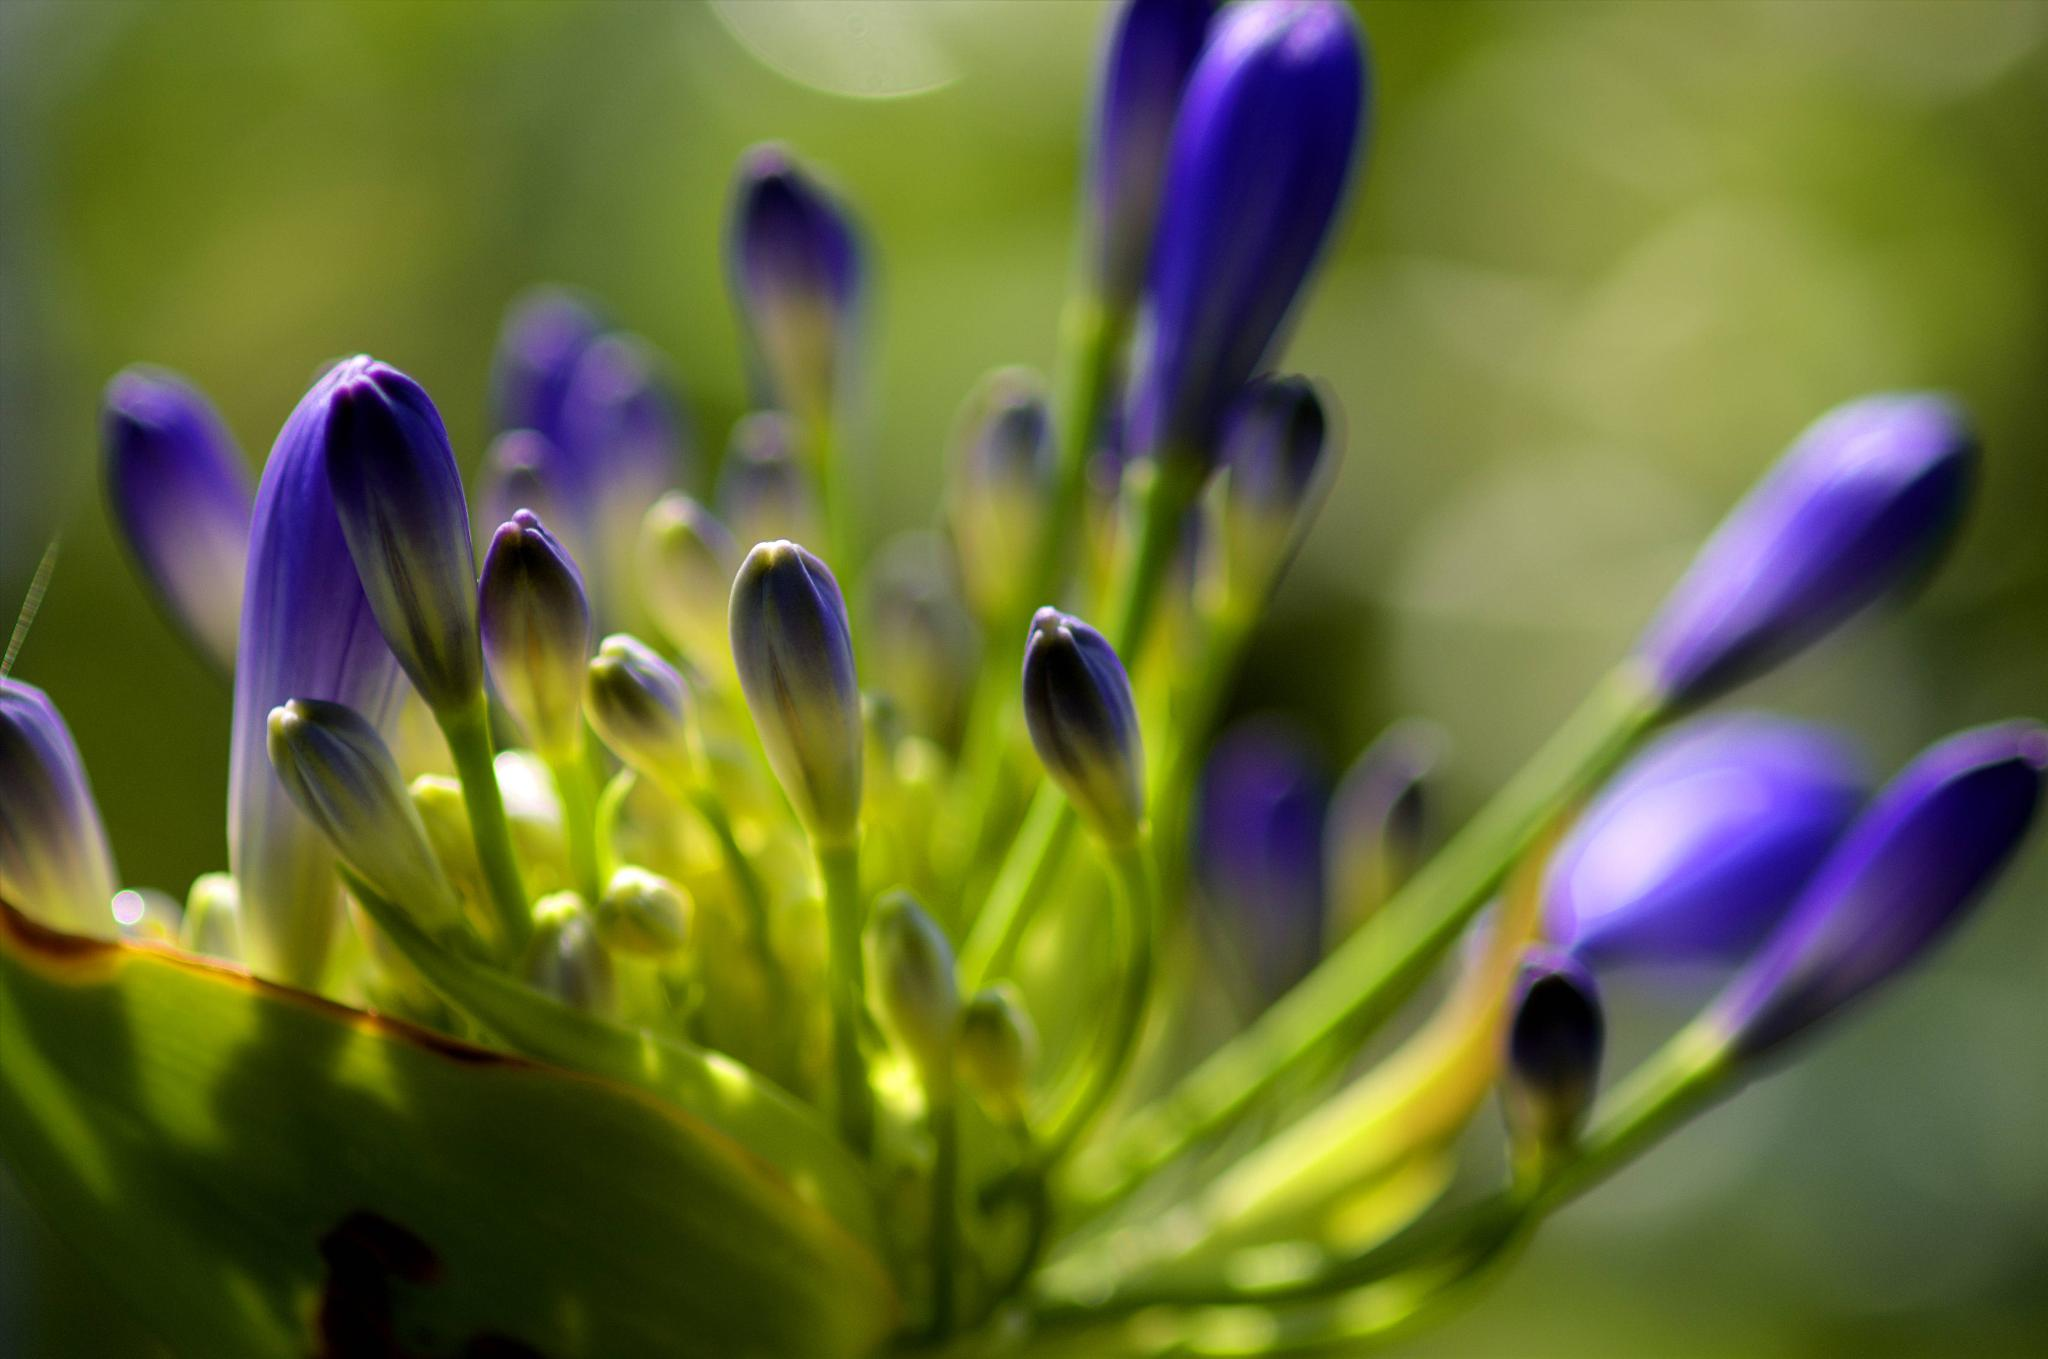 agapanthus by paulrobin.andrews